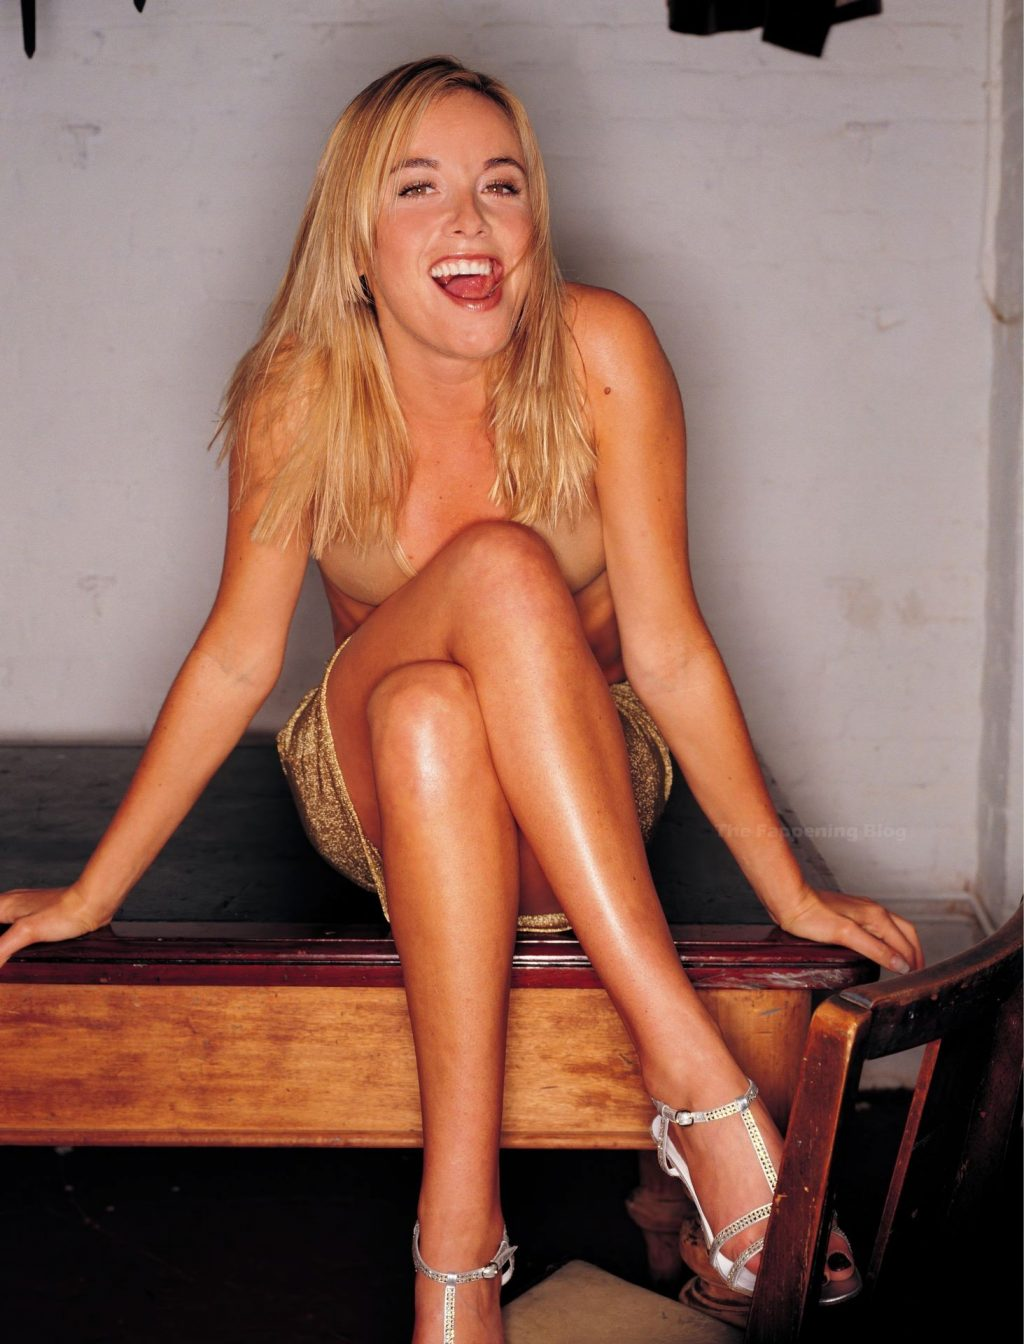 Tamzin Outhwaite Sexy - #TheFappening